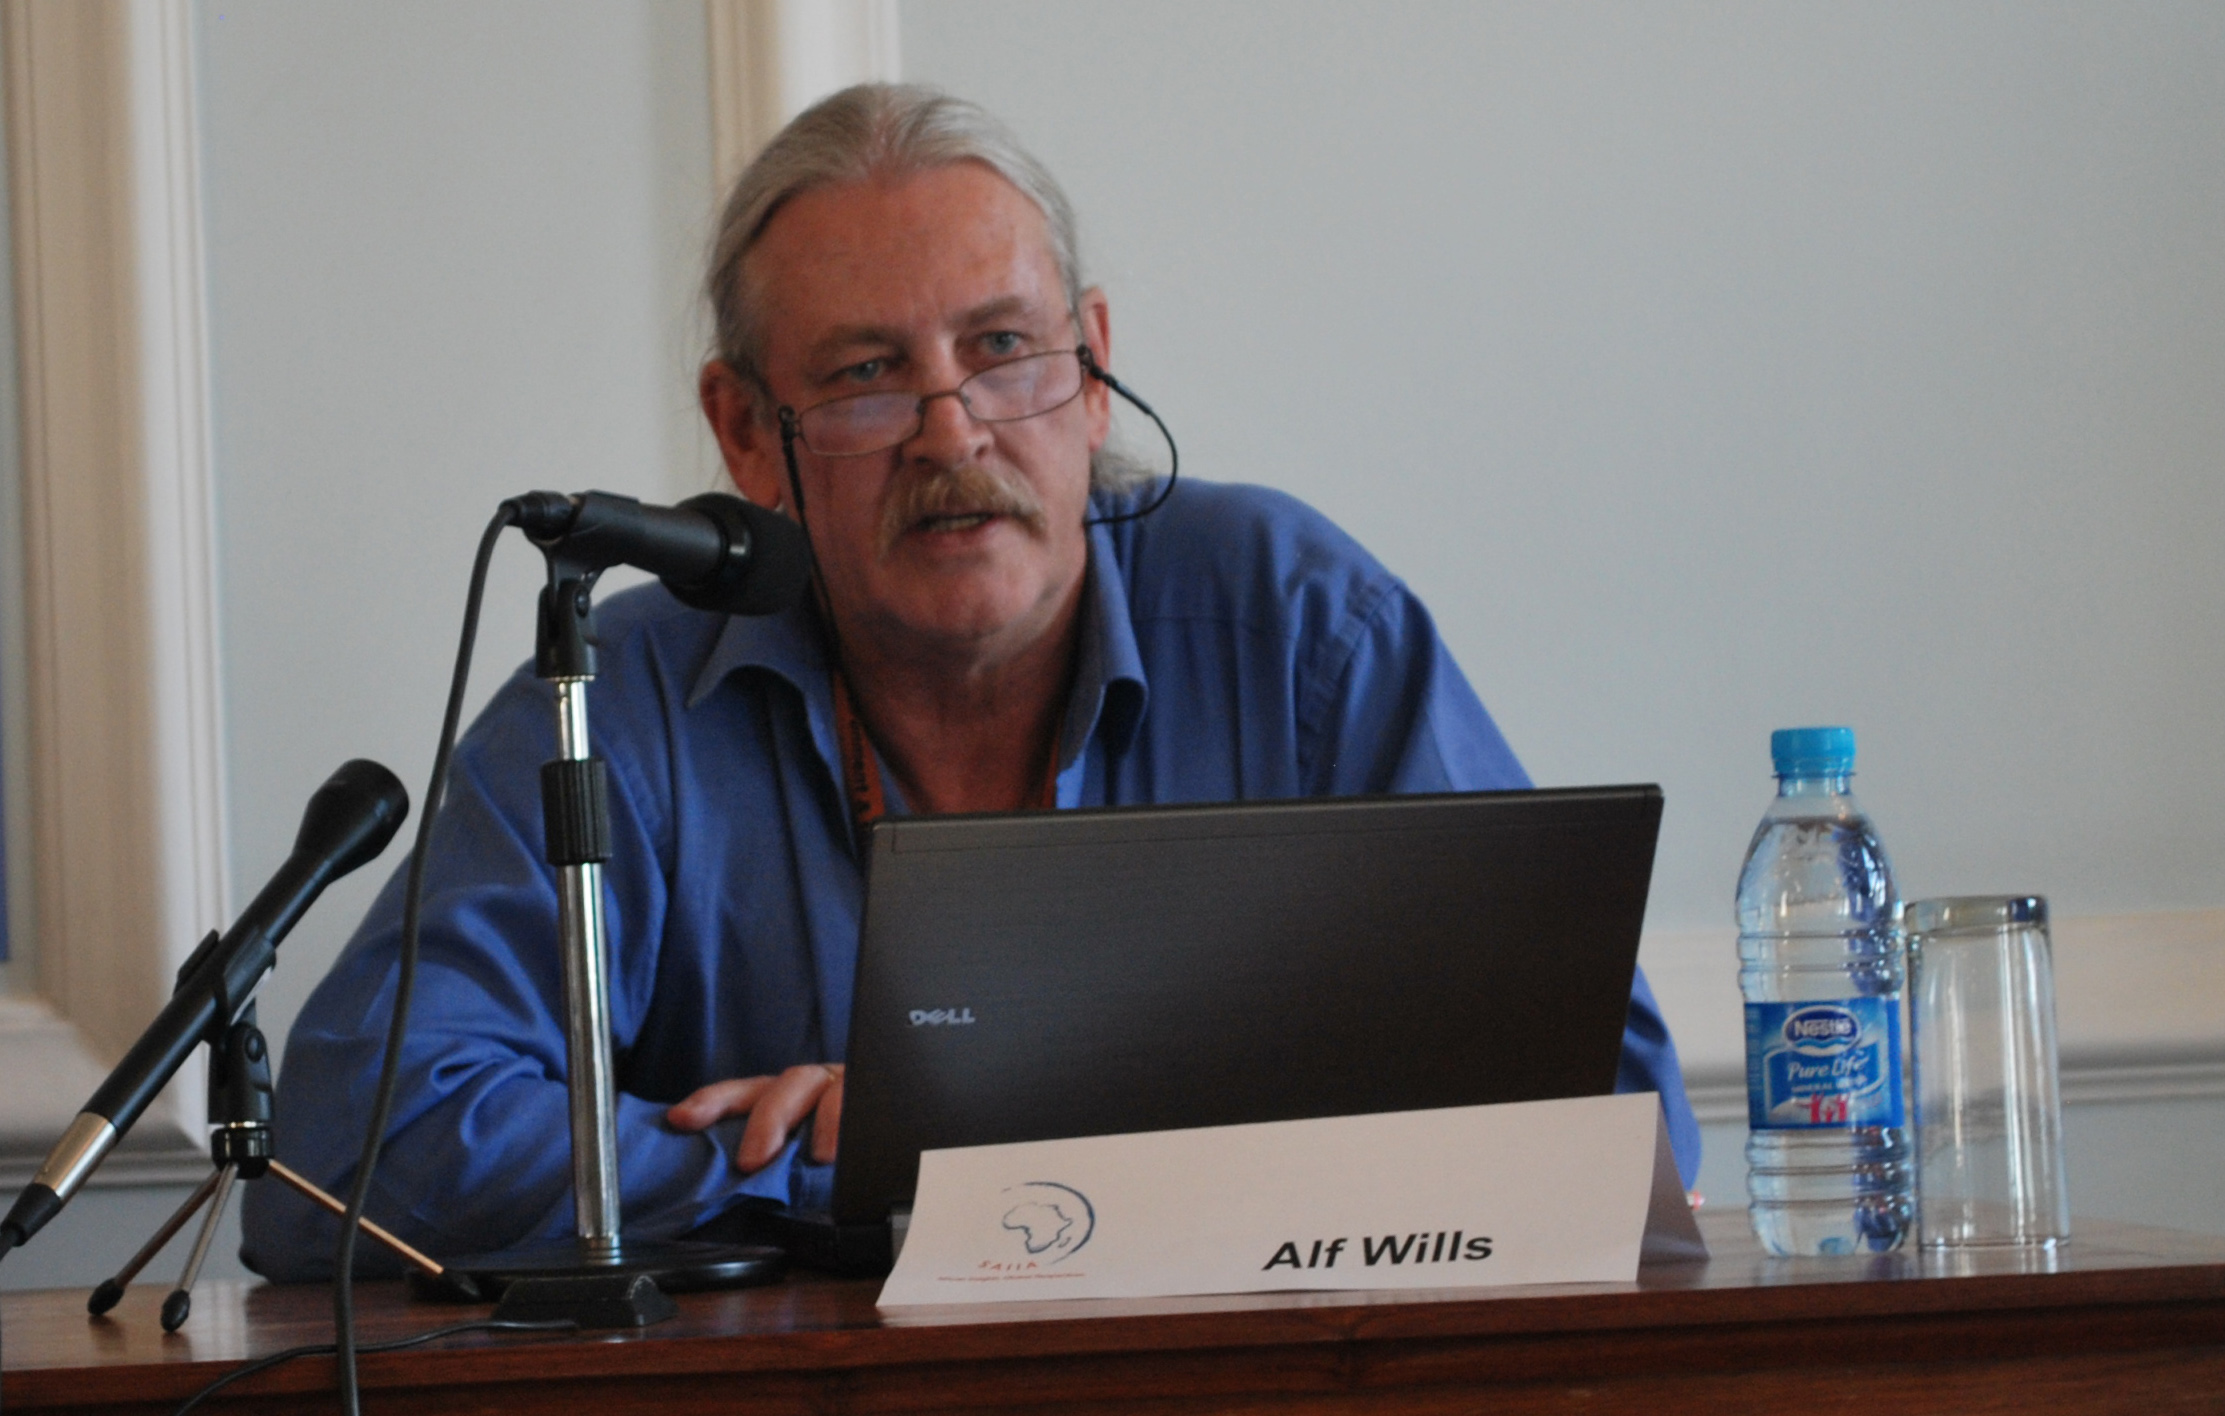 SA Chief Negotiator for Climate Change- Alf Wills